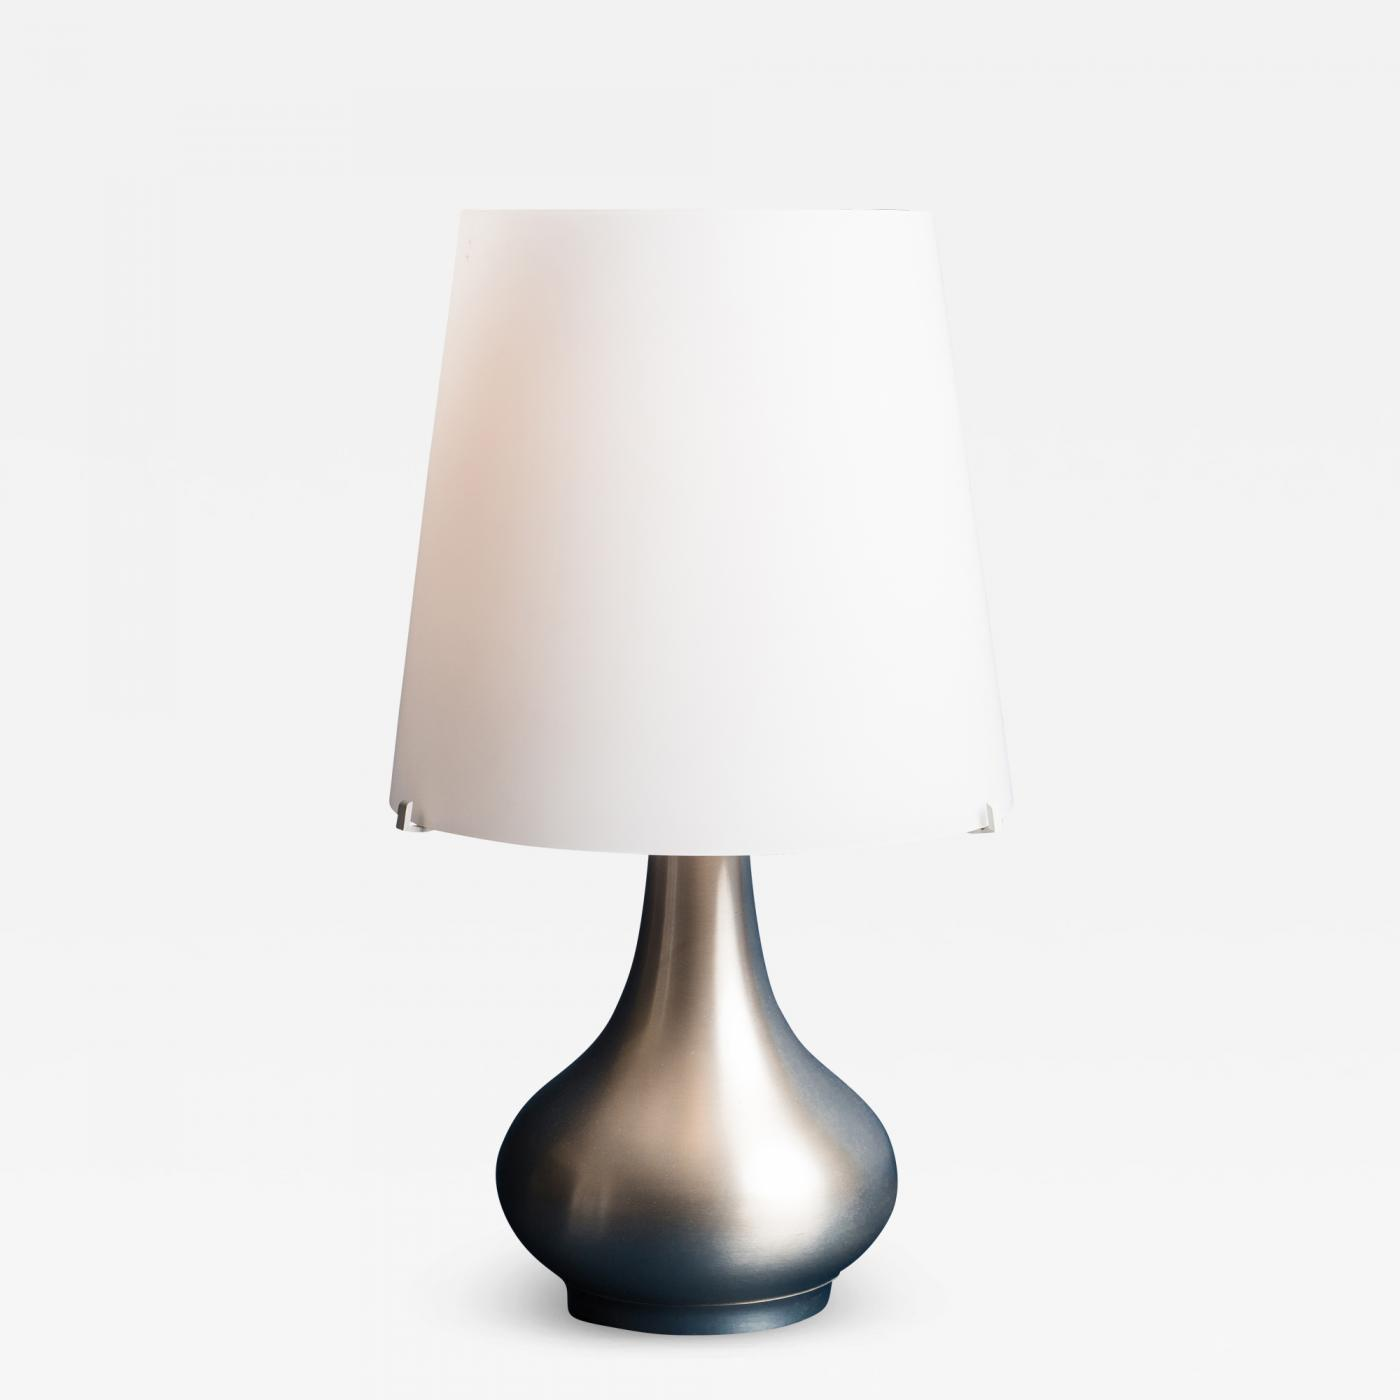 Fontana Arte Max Ingrand Table Lamp Model 2344 By Max Ingrand For Fontana Arte